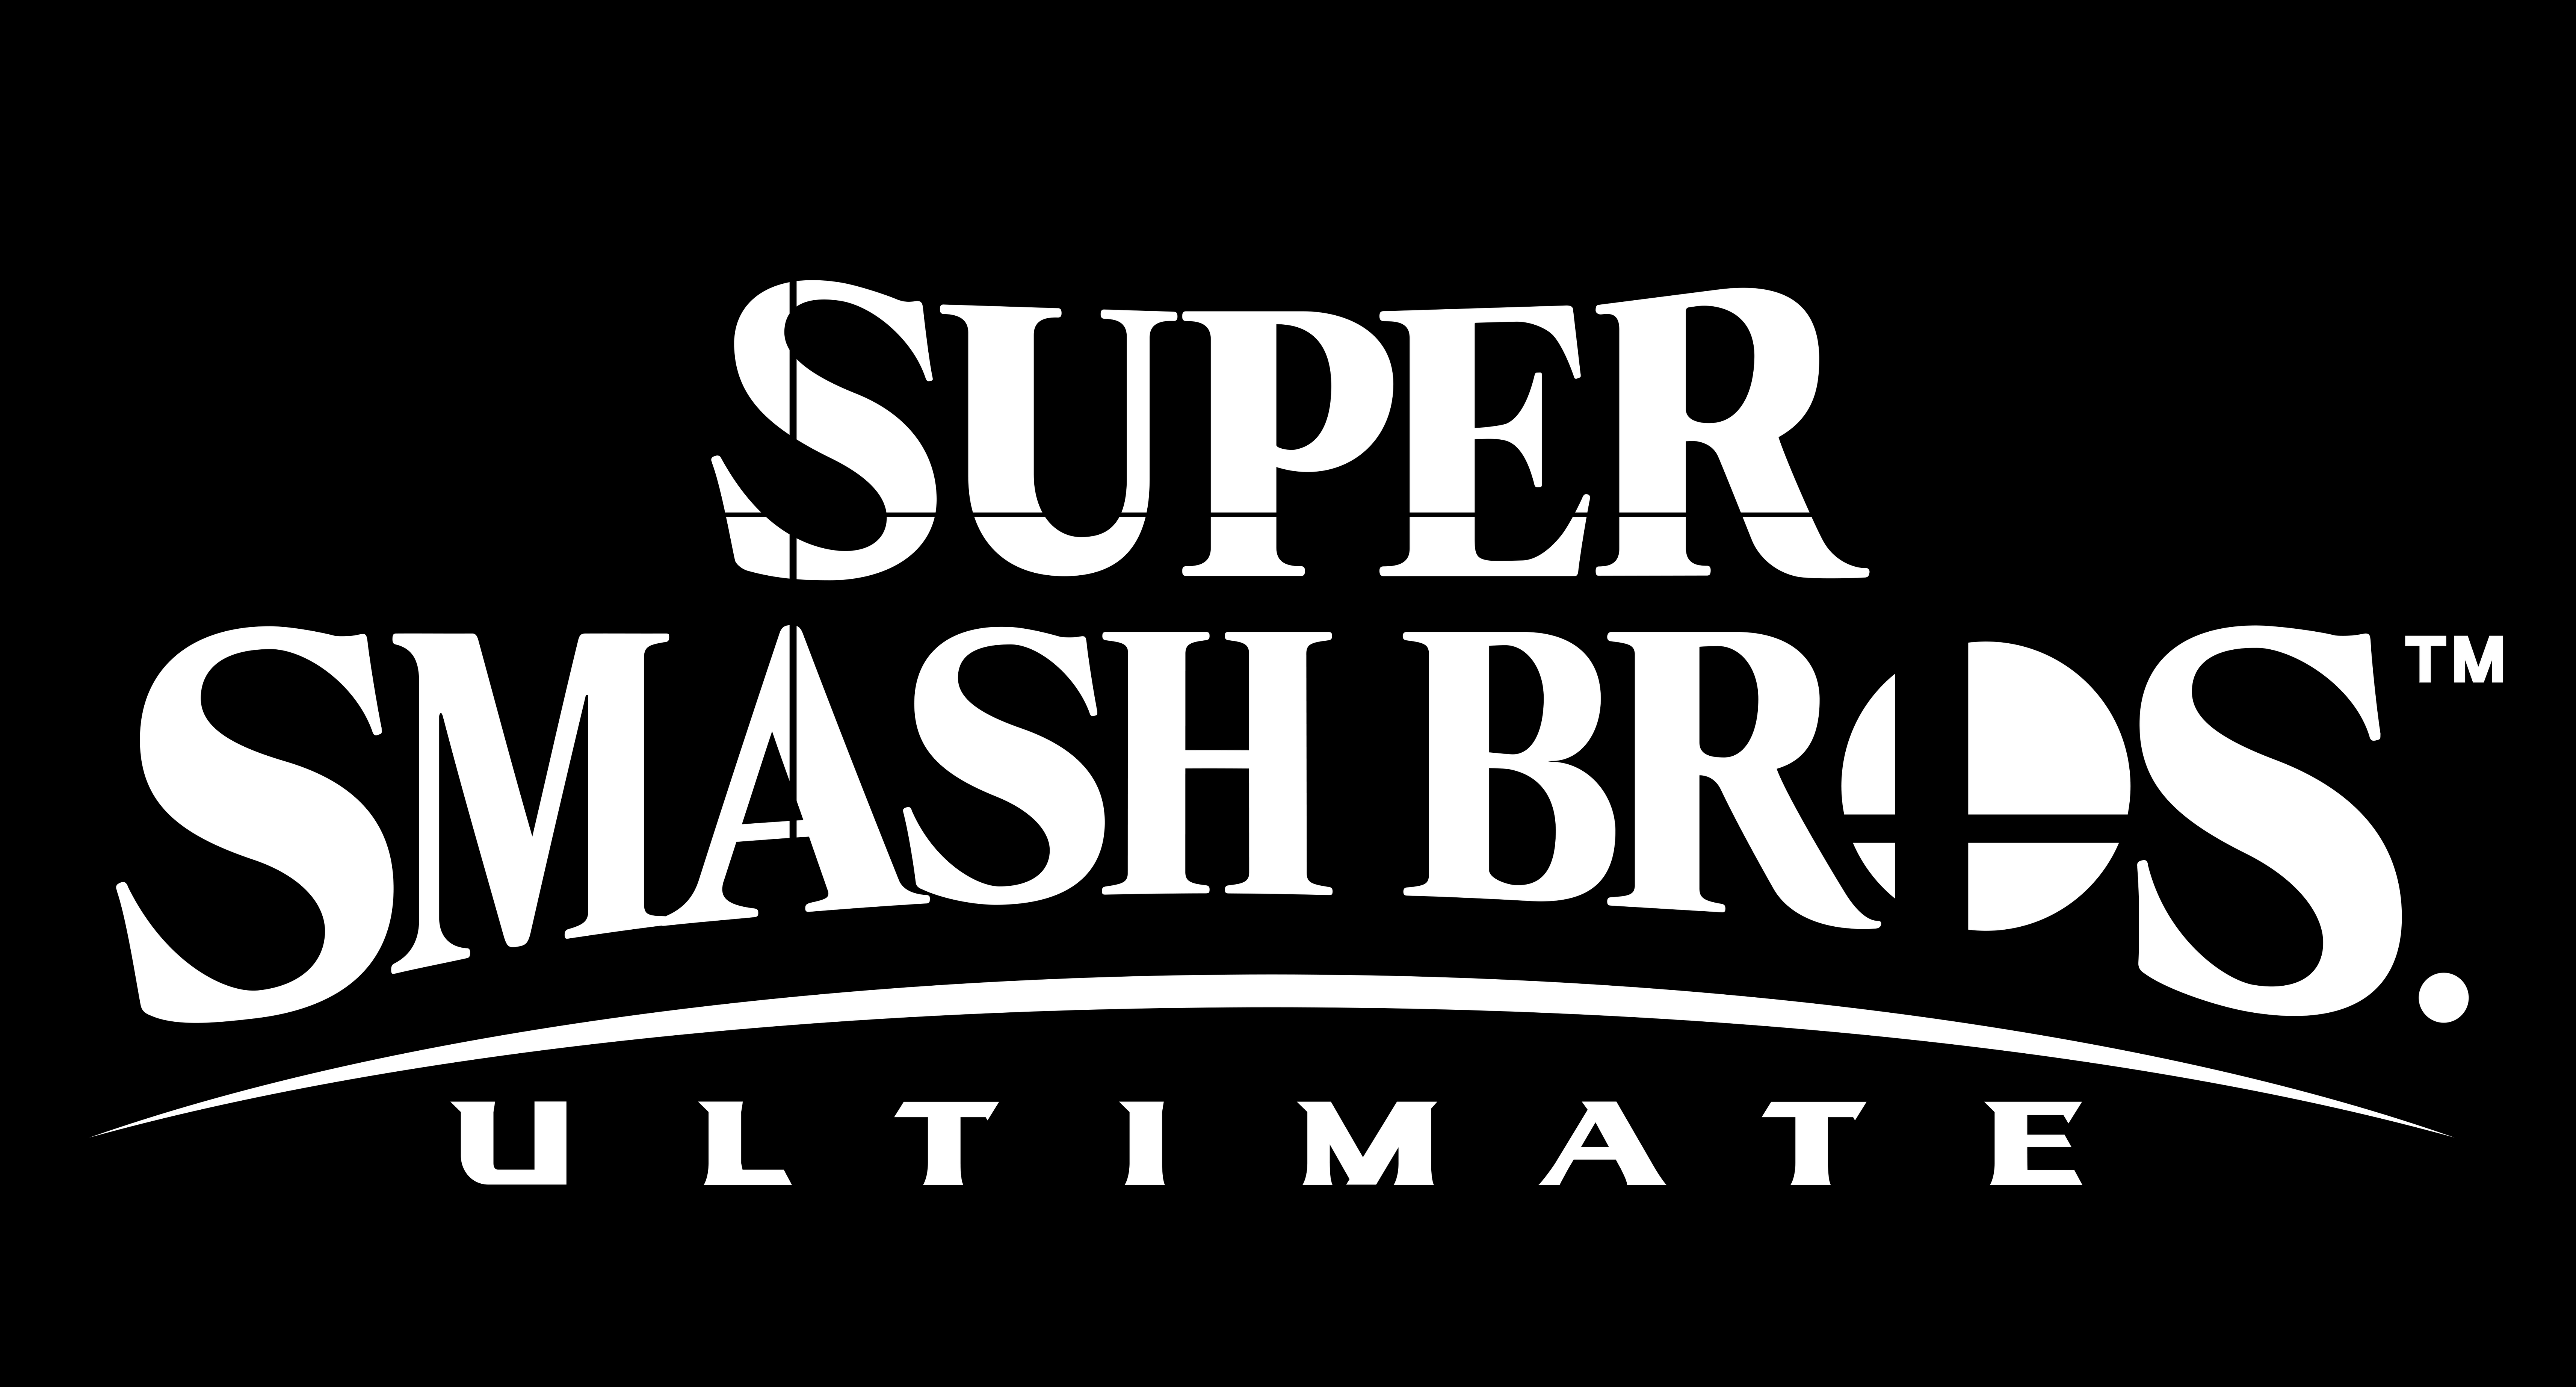 ssbu logo (this is actually like my 4th take on posting this thread because i suck at this :P)